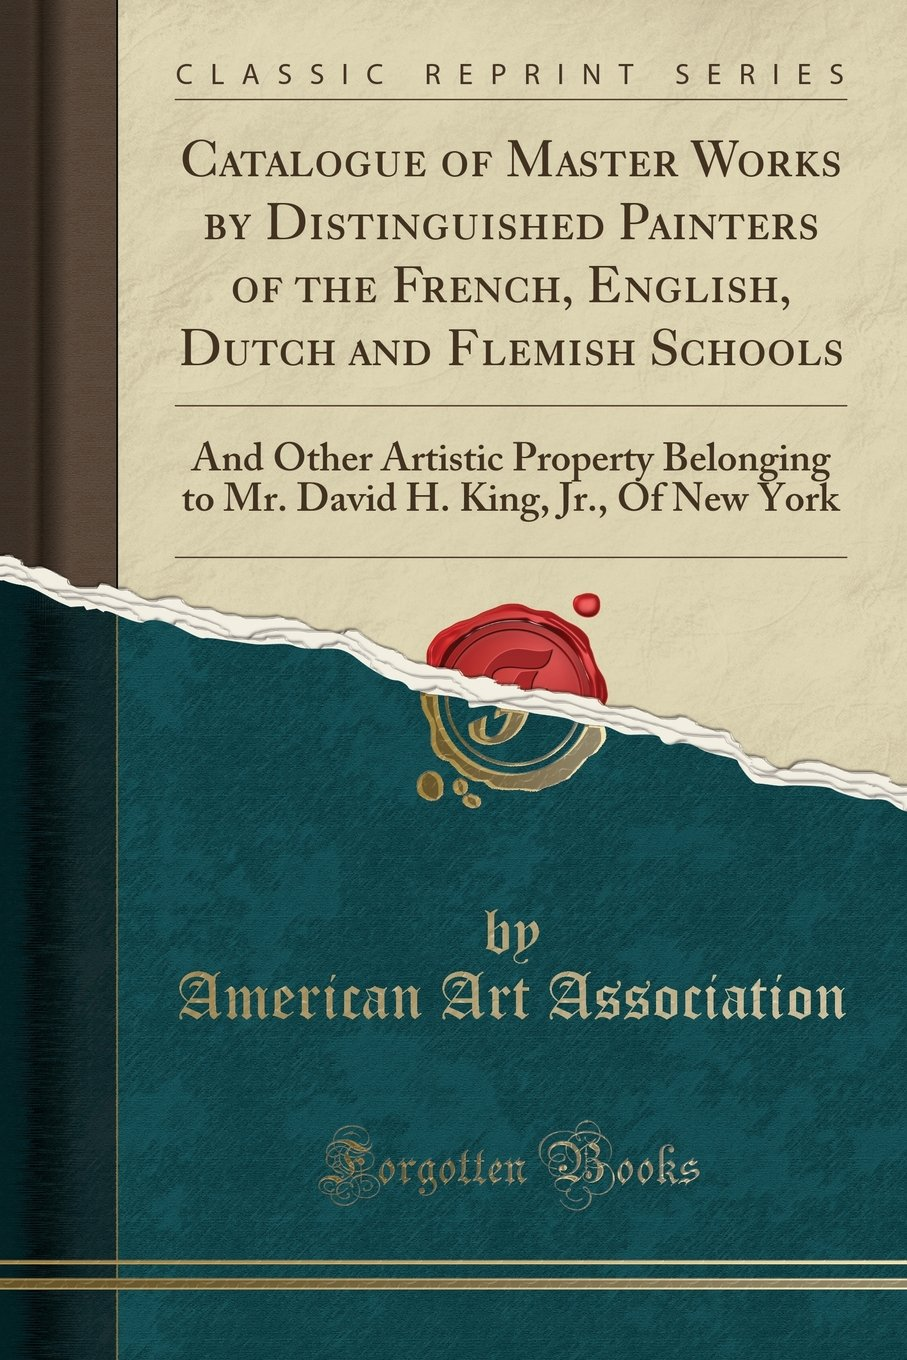 Catalogue of Master Works by Distinguished Painters of the French, English, Dutch and Flemish Schools: And Other Artistic Property Belonging to Mr. David H. King, Jr., Of New York (Classic Reprint) PDF